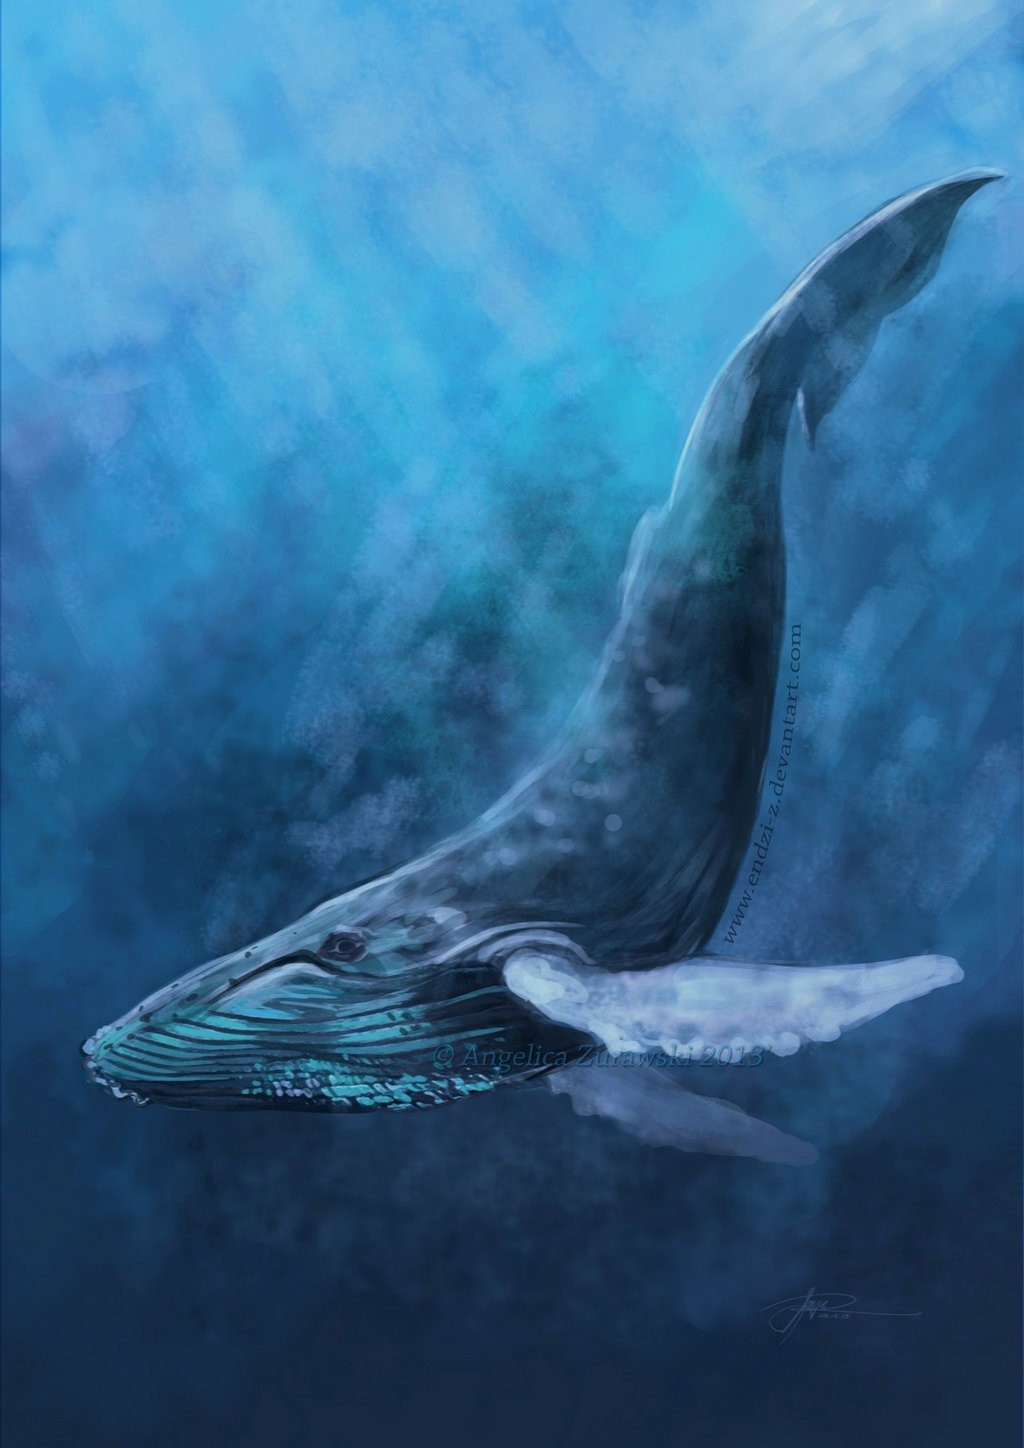 Drawn wallpaper whale (59+) Download Wallpapers Whale HD